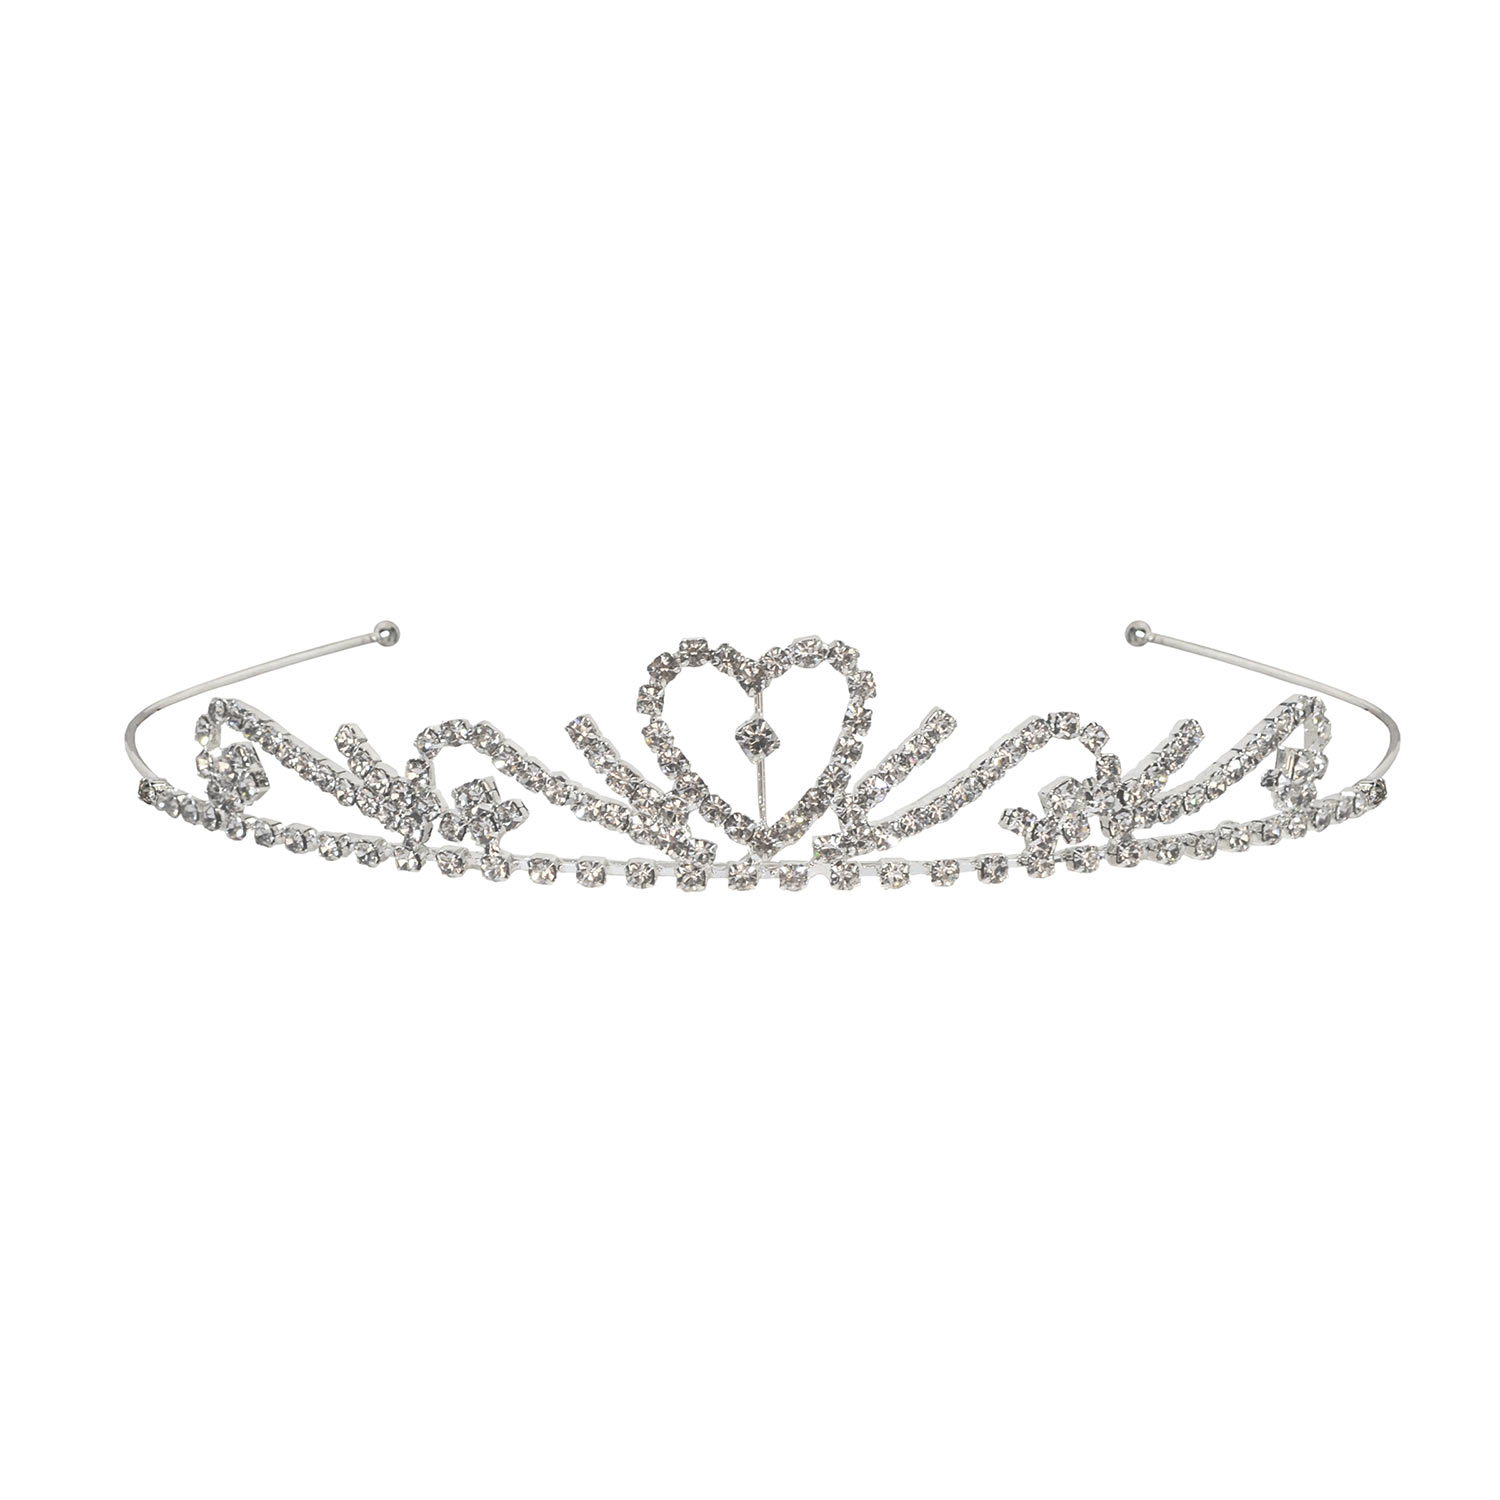 Silver tiara with shimmering rhinestones.